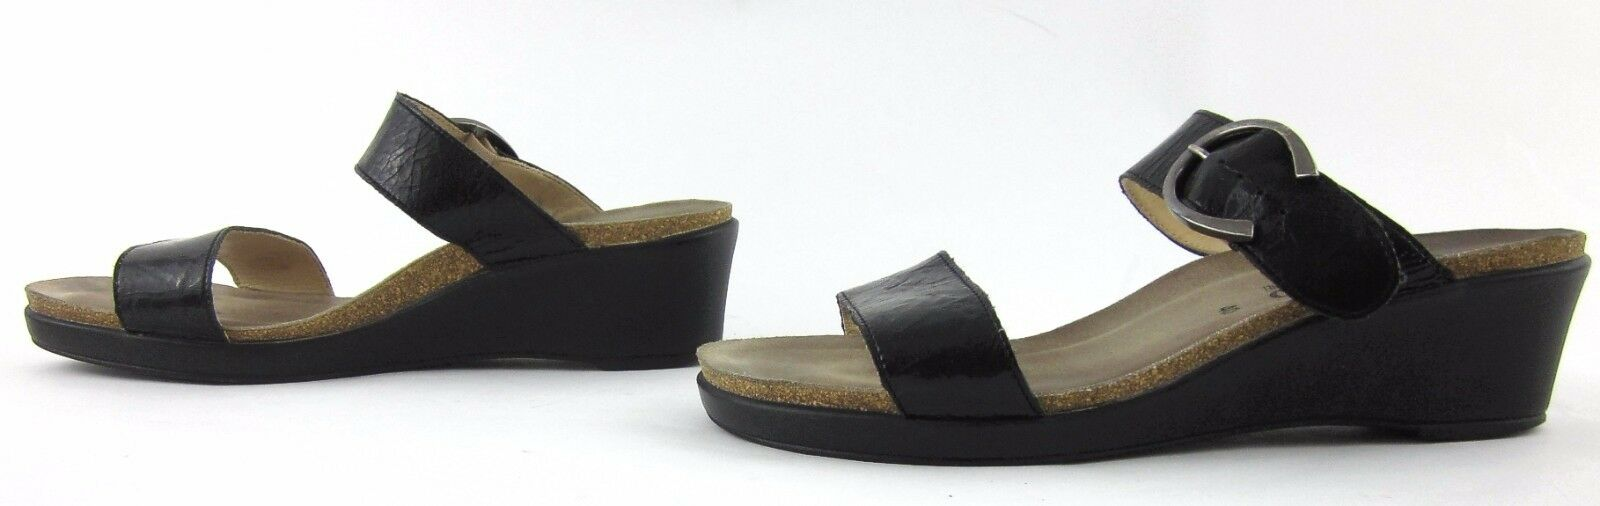 Mephisto Dual Strap Buckle Wedge Sandals nero Crinkle Leather Leather Leather Sz 40 EU   10 US 3907d1